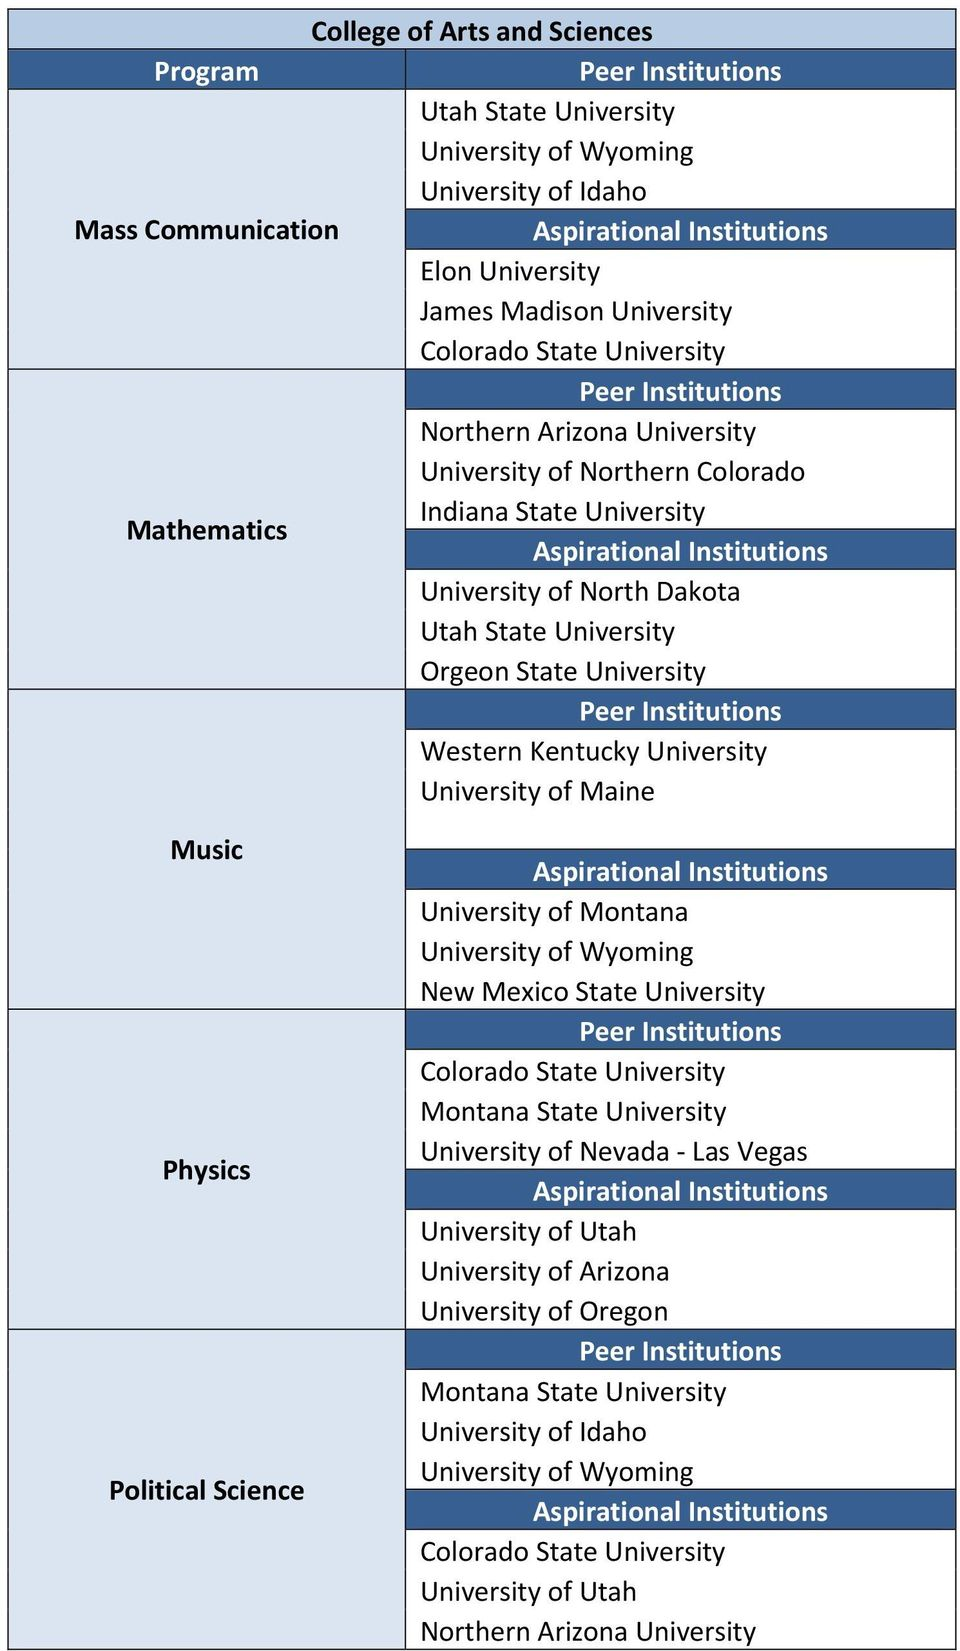 Kentucky University University of Maine Music Physics Political Science New Mexico State University Colorado State